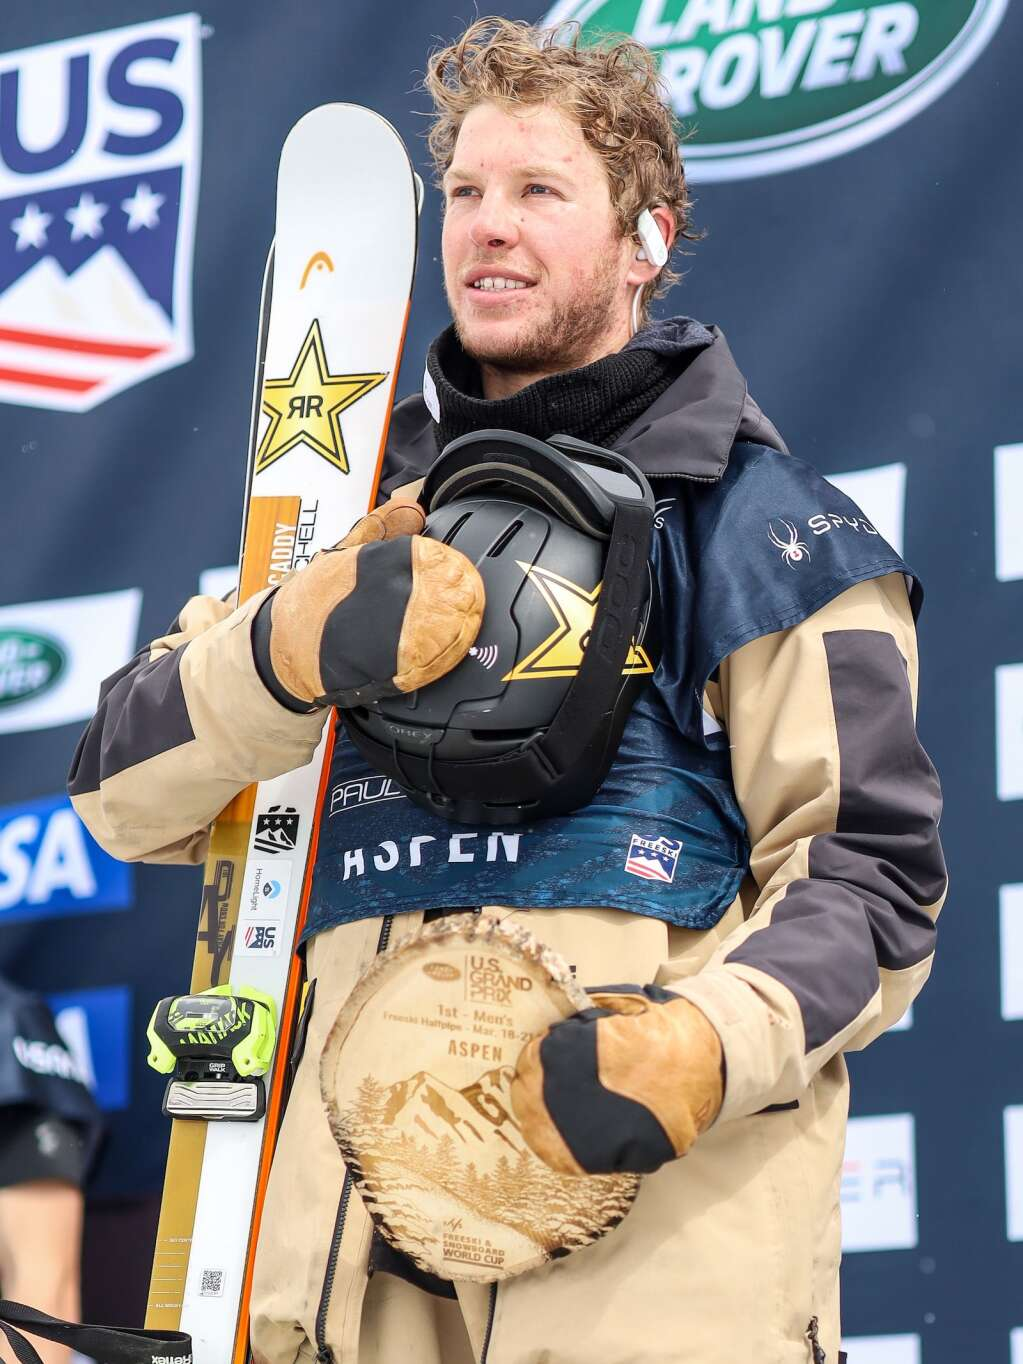 Crested Butte's Aaron Blunck listens to the national anthem on the podium after his win in the men's freeski halfpipe final at the U.S. Grand Prix and World Cup on Sunday, March 21, 2021, at Buttermilk Ski Area in Aspen. Photo by Austin Colbert/The Aspen Times.